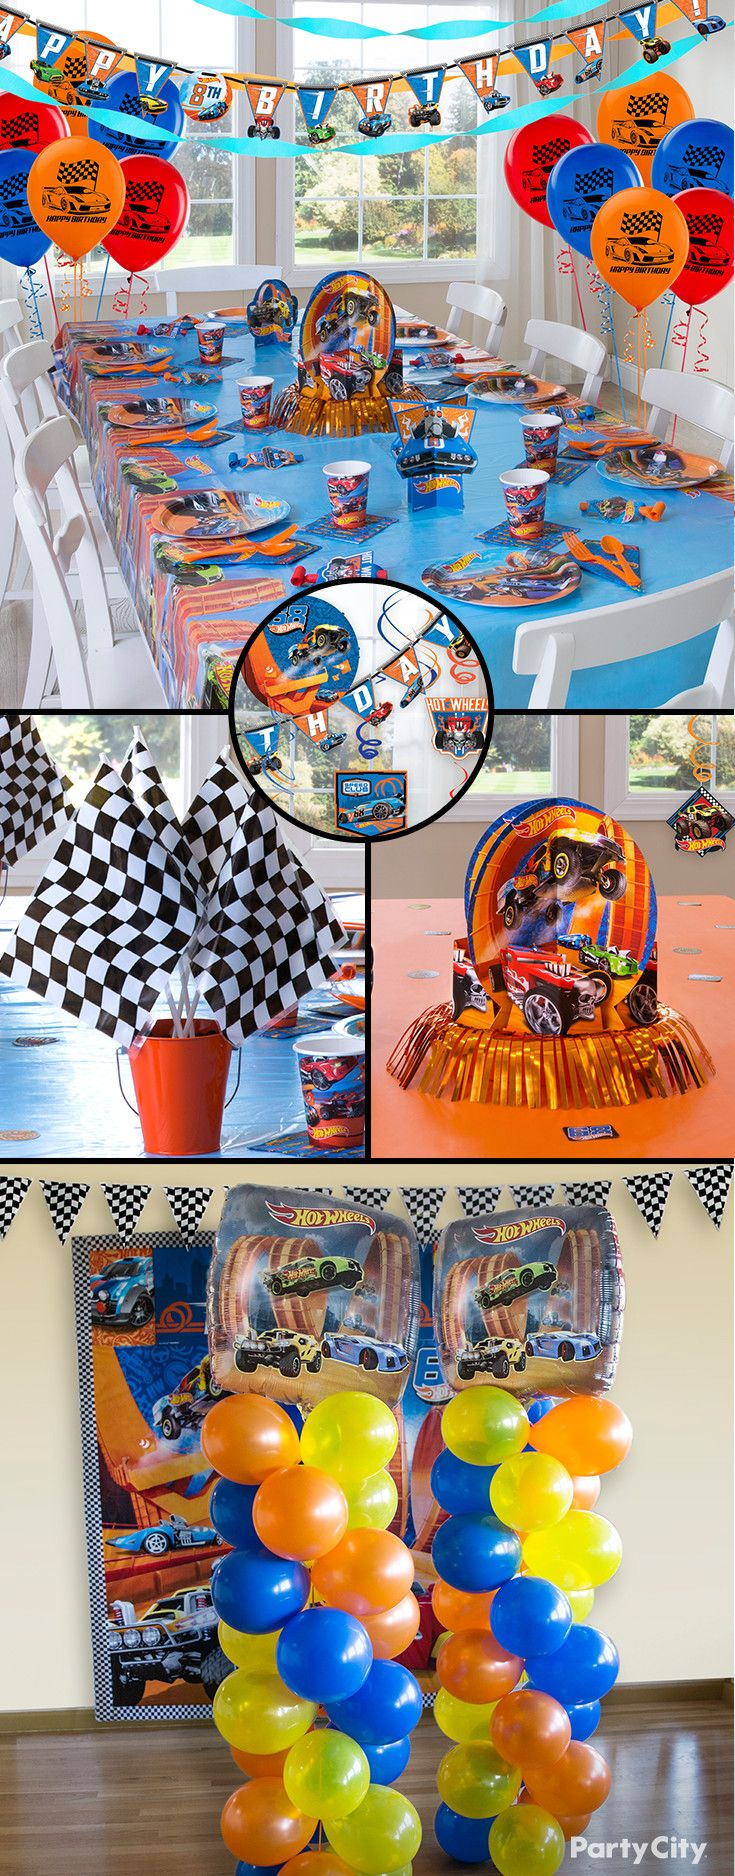 On your mark…get set…and GO! With fun Hot Wheels plates, checkered flags, cool favors, more balloons to choose from – Party City is the one-stop shop for a zoomin' party day.